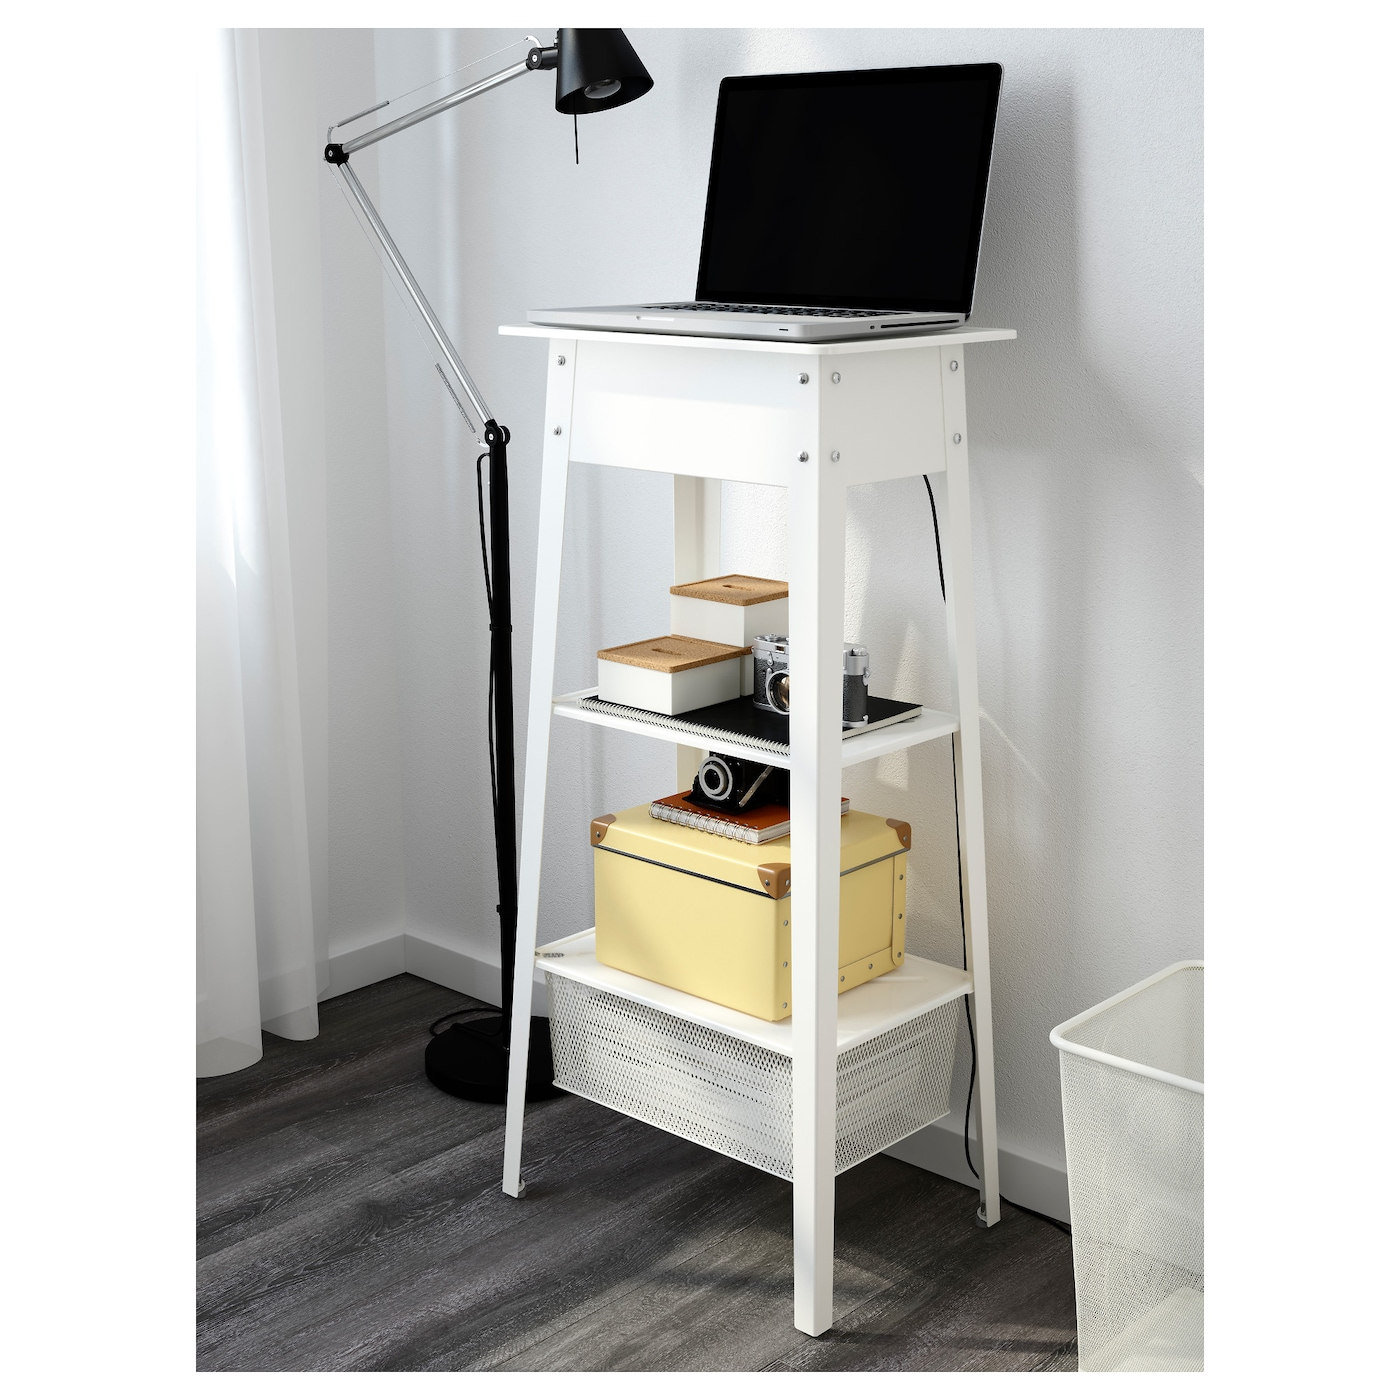 Ikea ps 2014 standing laptop station white ikea - Mobile computer ikea ...